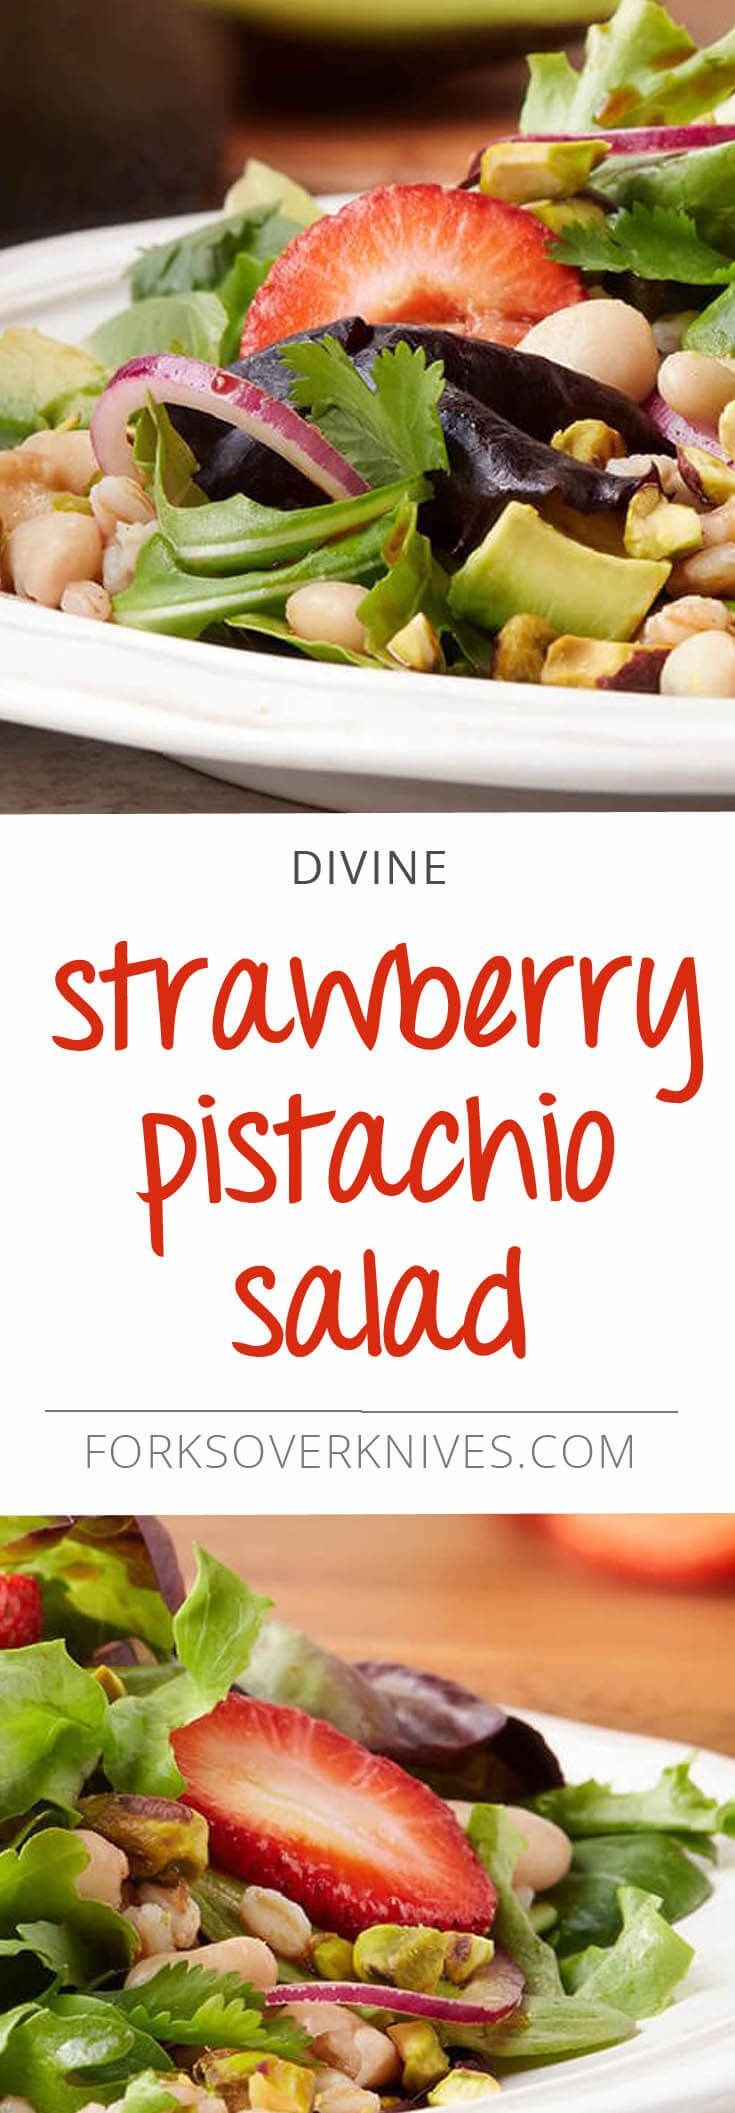 We love the flavor, color, and texture that strawberries bring to this salad, while grains and pistachios offer an irresistible blend of chewy and crunchy.